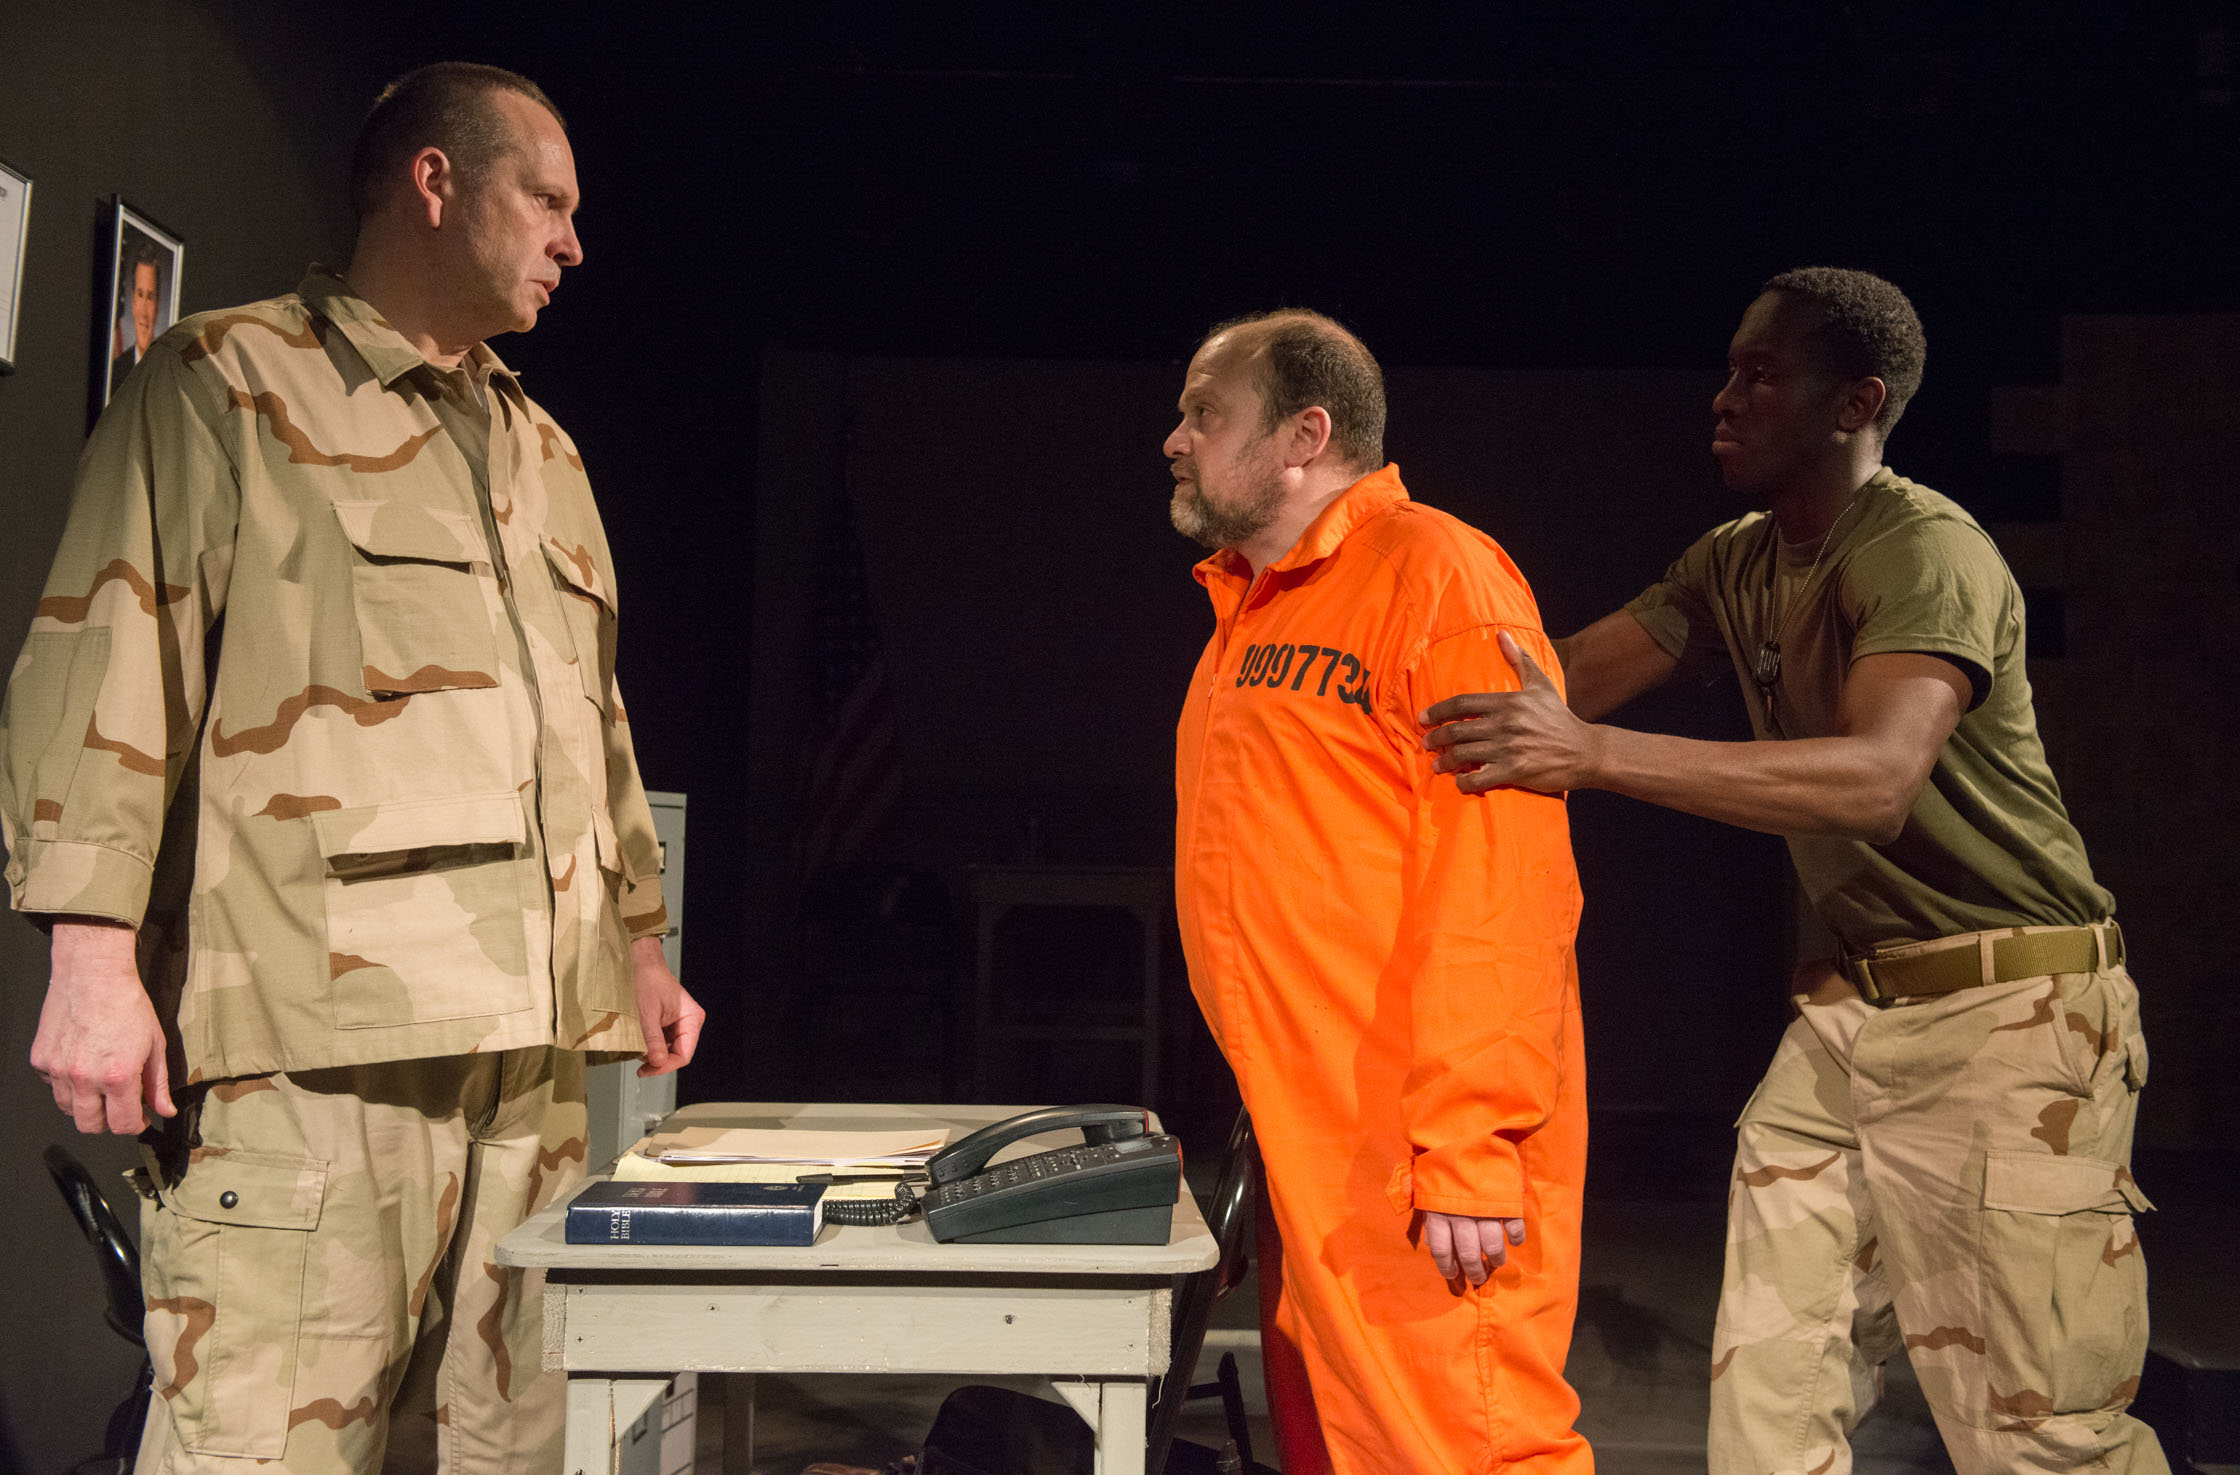 """Tony St. Clair as Col. Lewis, Steve Silver as Ayyub,and David Goodloe as Pvt. Michaels in """"Skin for Skin"""" from The Agency Theatre Collective. Photo by Bill Richert."""